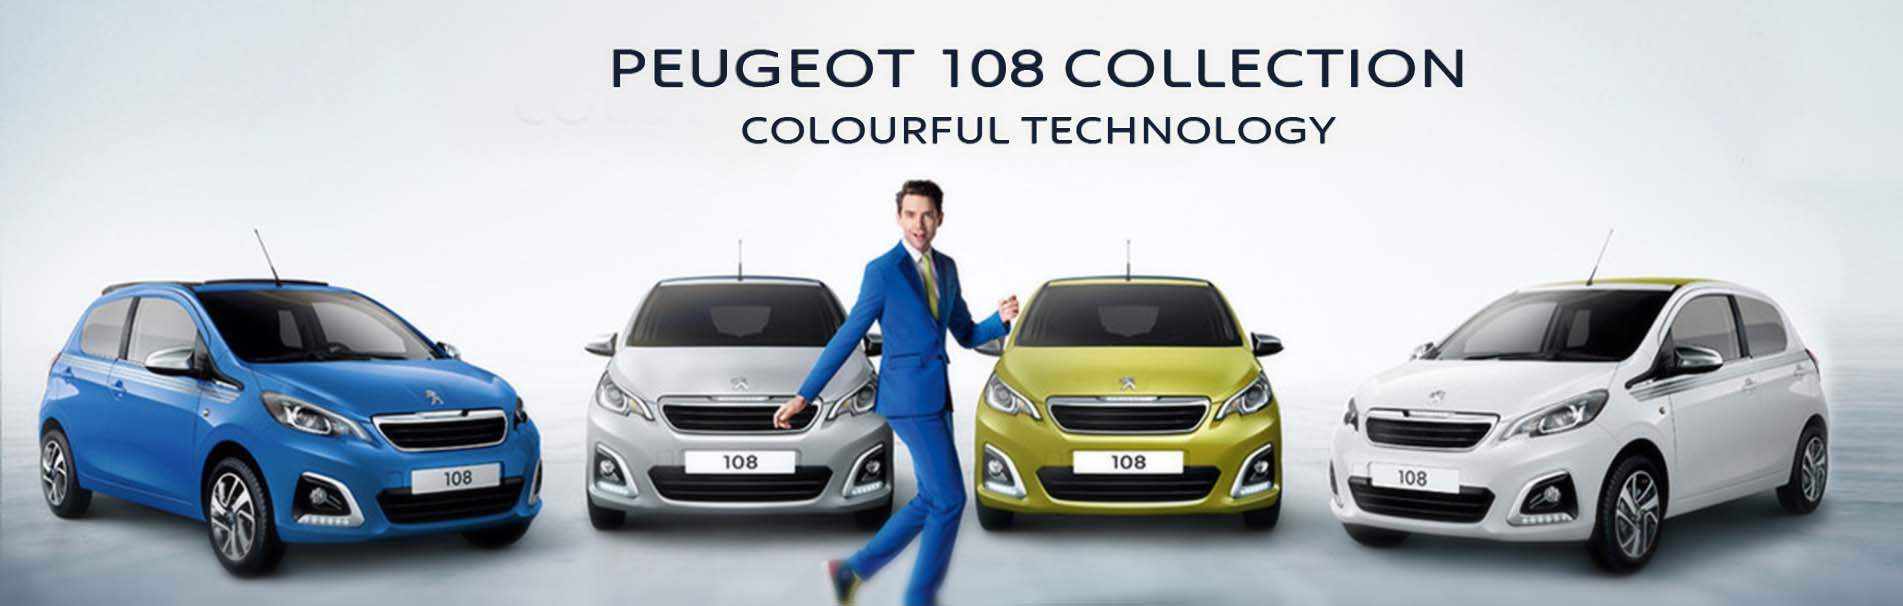 peugeot-108-collection-mika-special-edition-sli